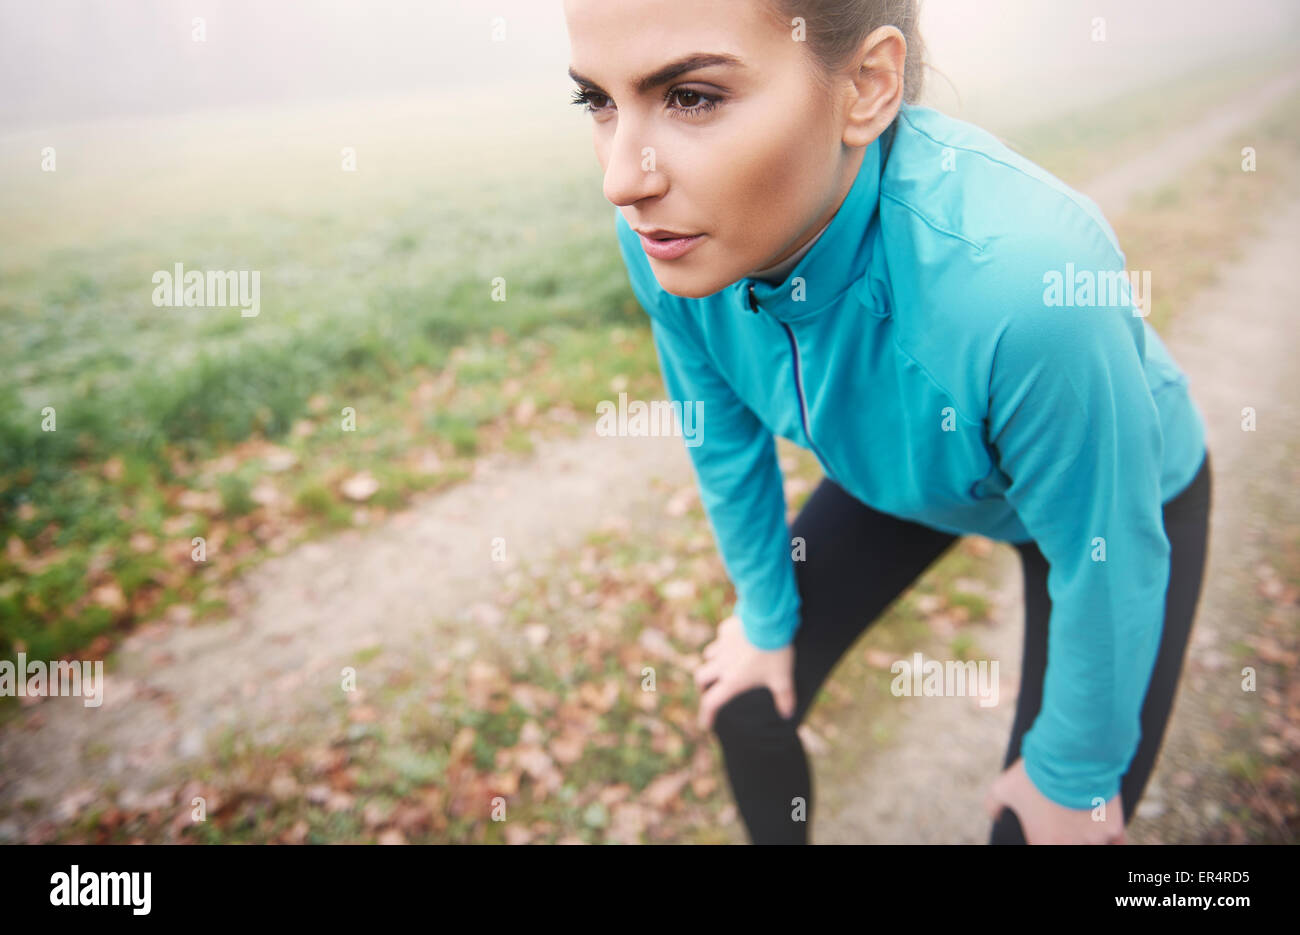 Morning running is tiring but it's a kick start for the rest of the day. Debica, Poland - Stock Image